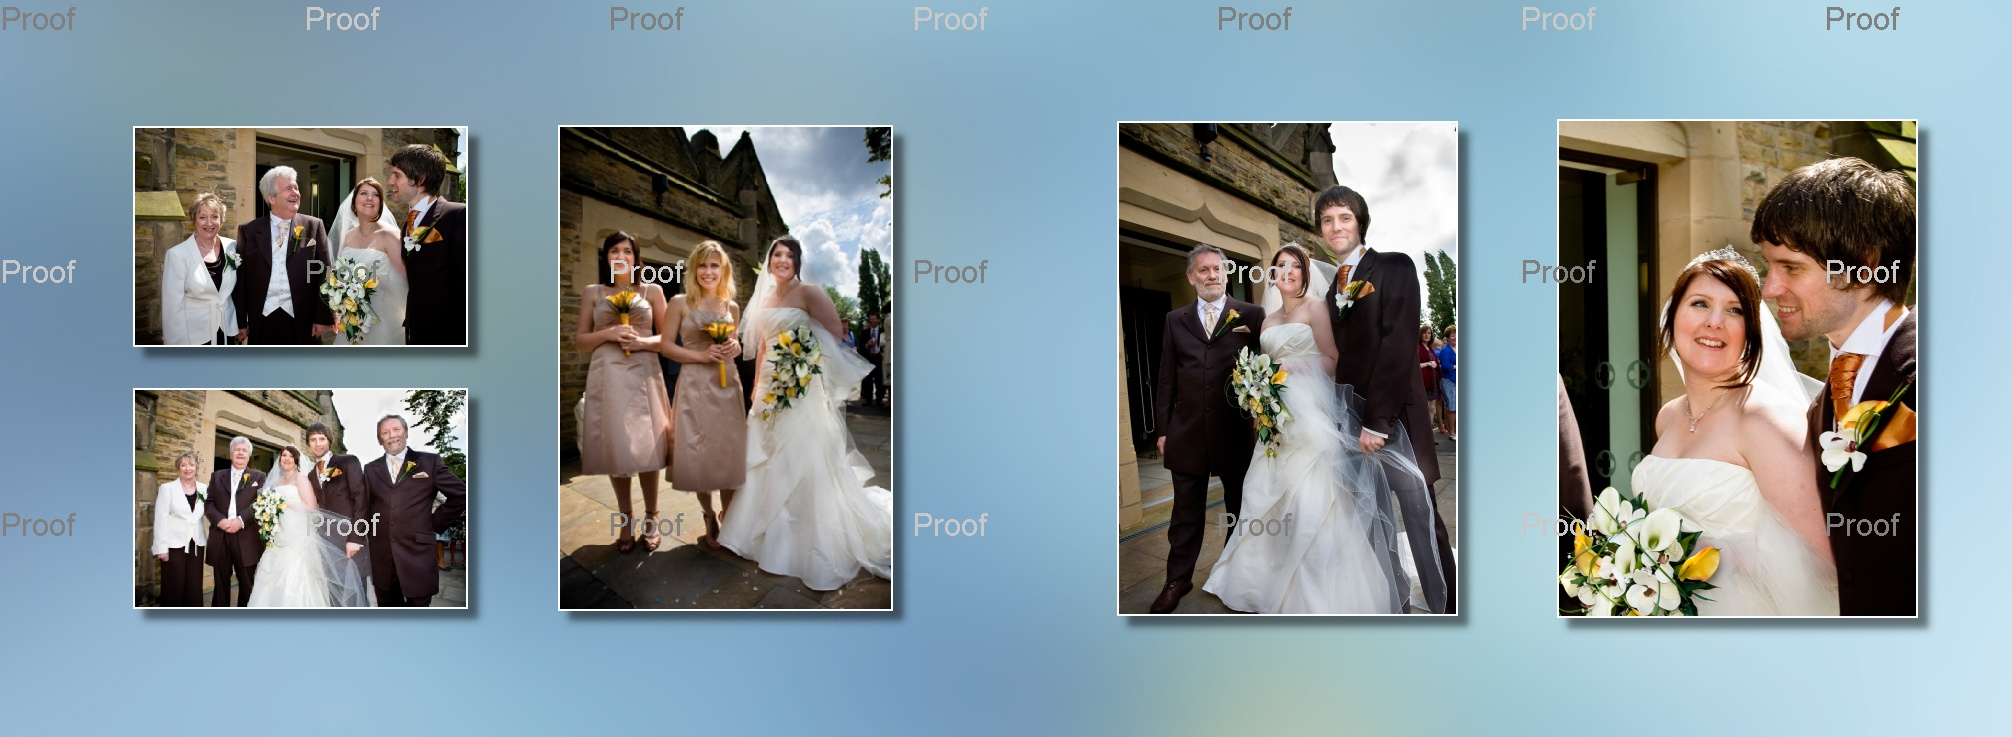 pages 26-27 of wedding storybook album with posed family wedding pictures outside church in Manchester